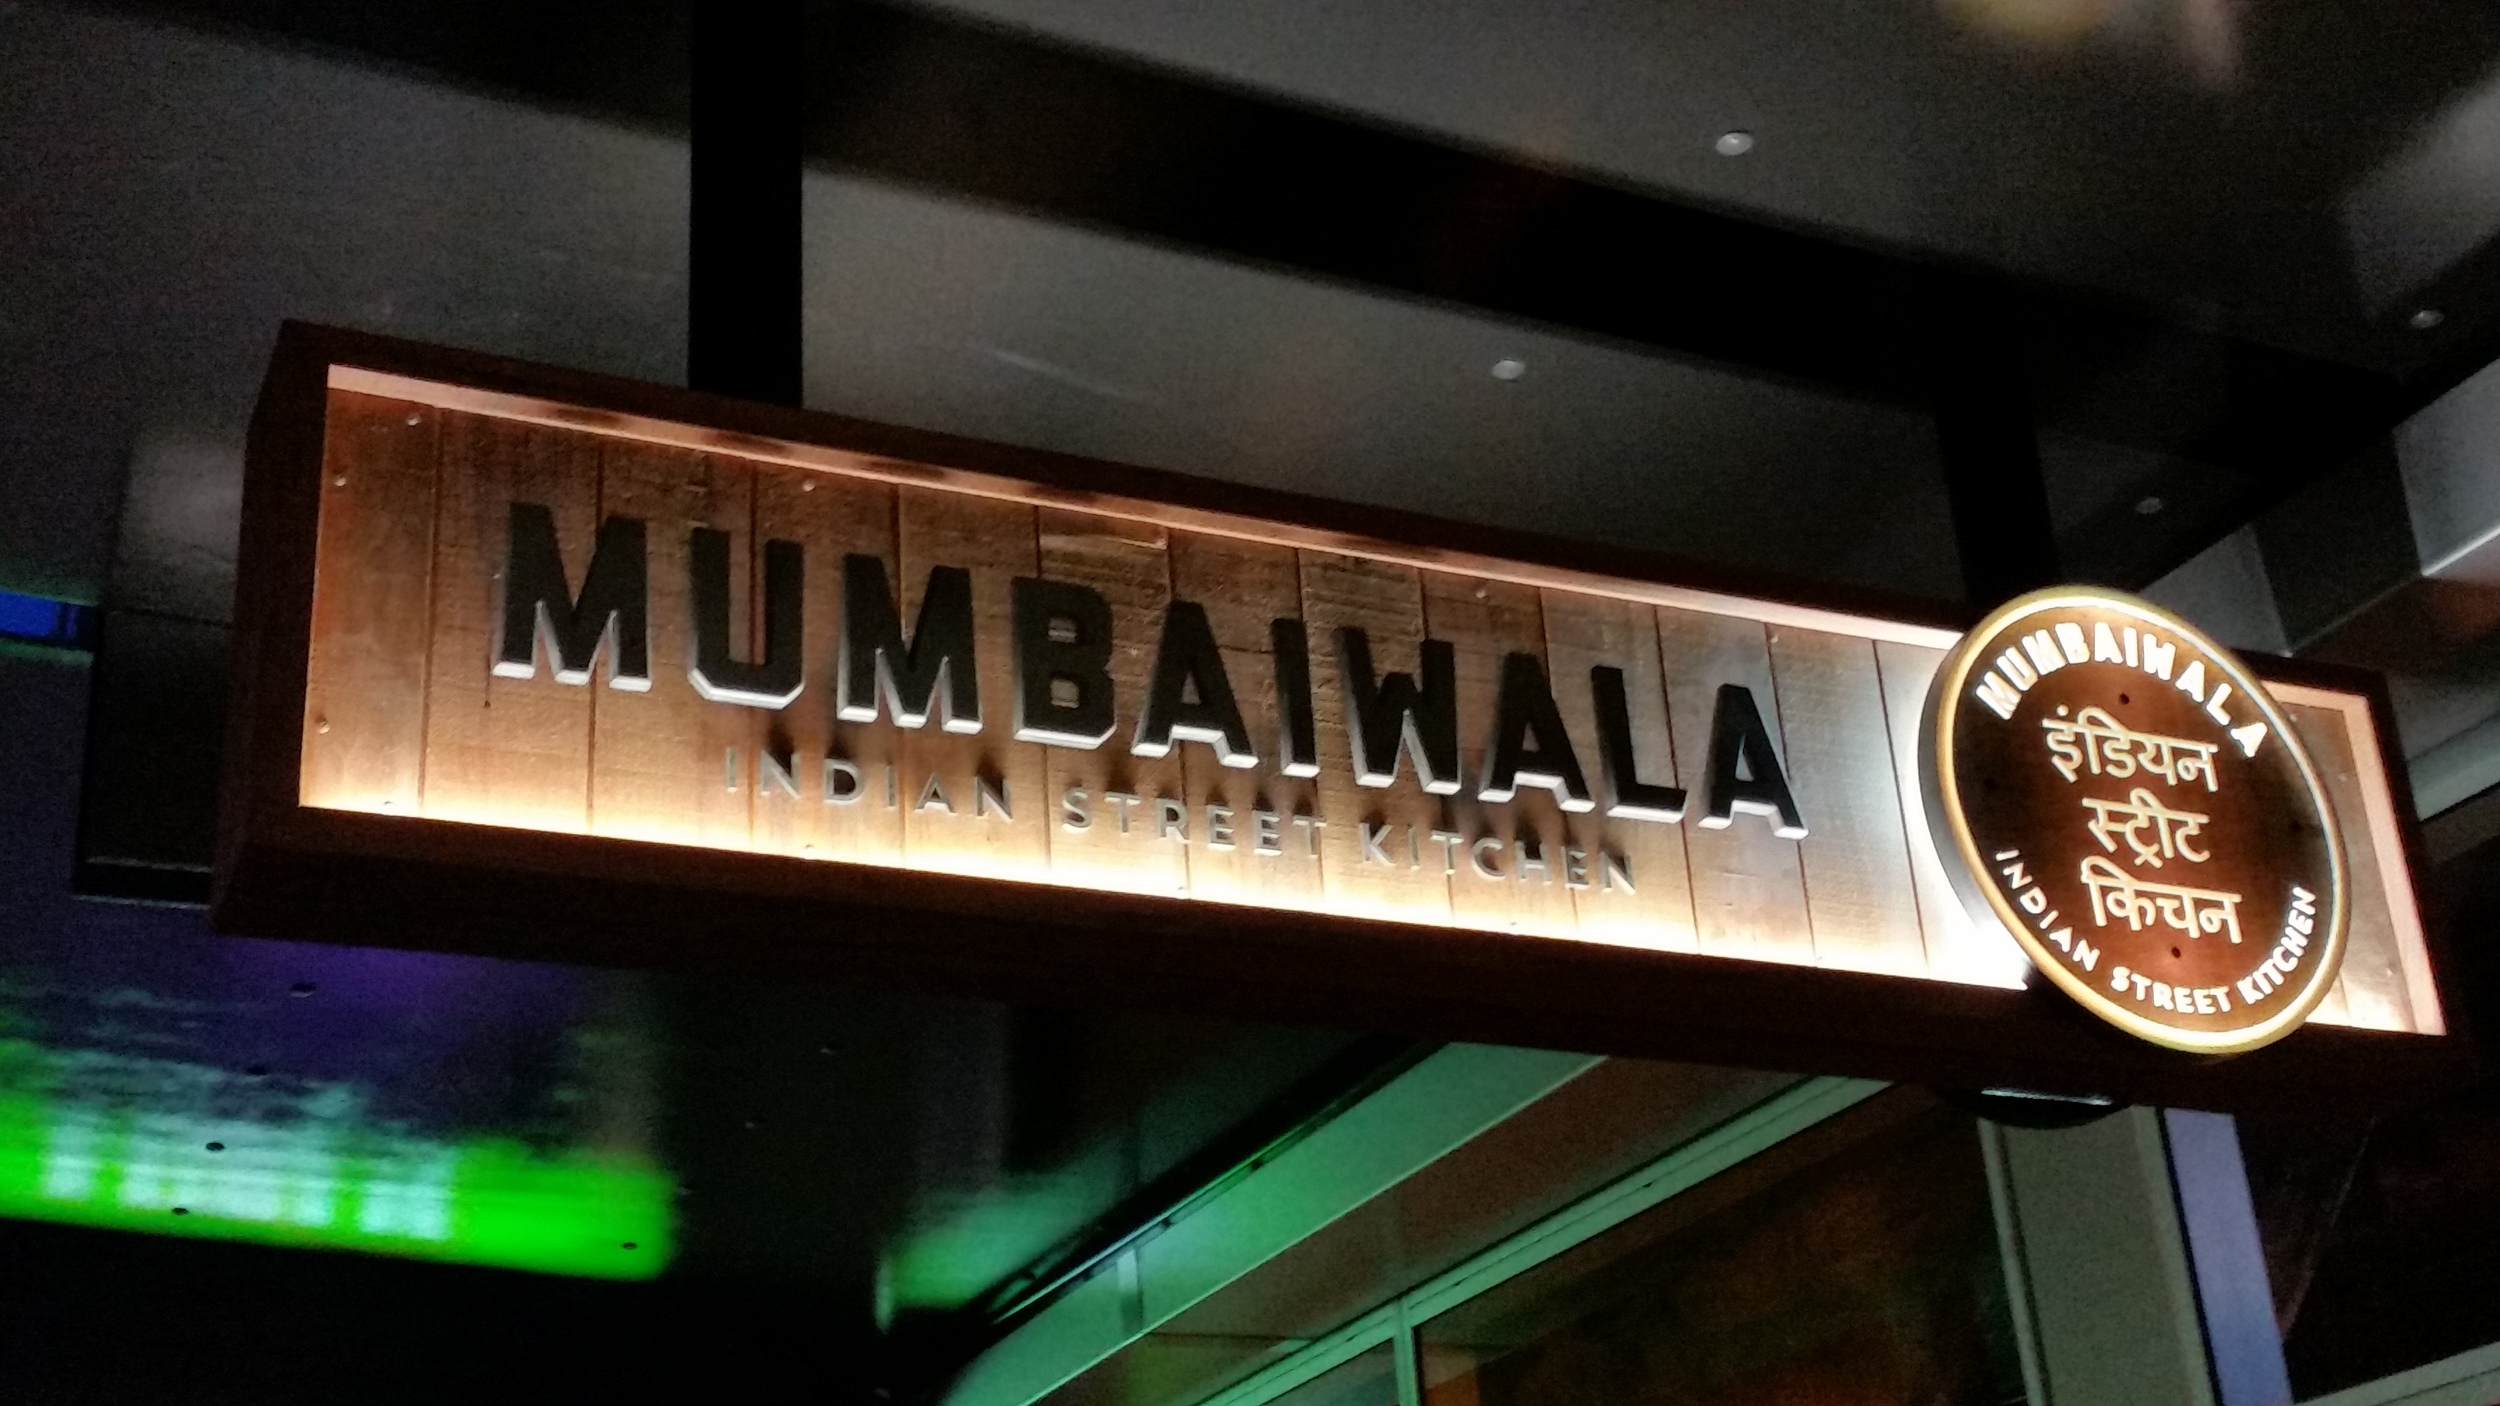 Mumbaiwala sign